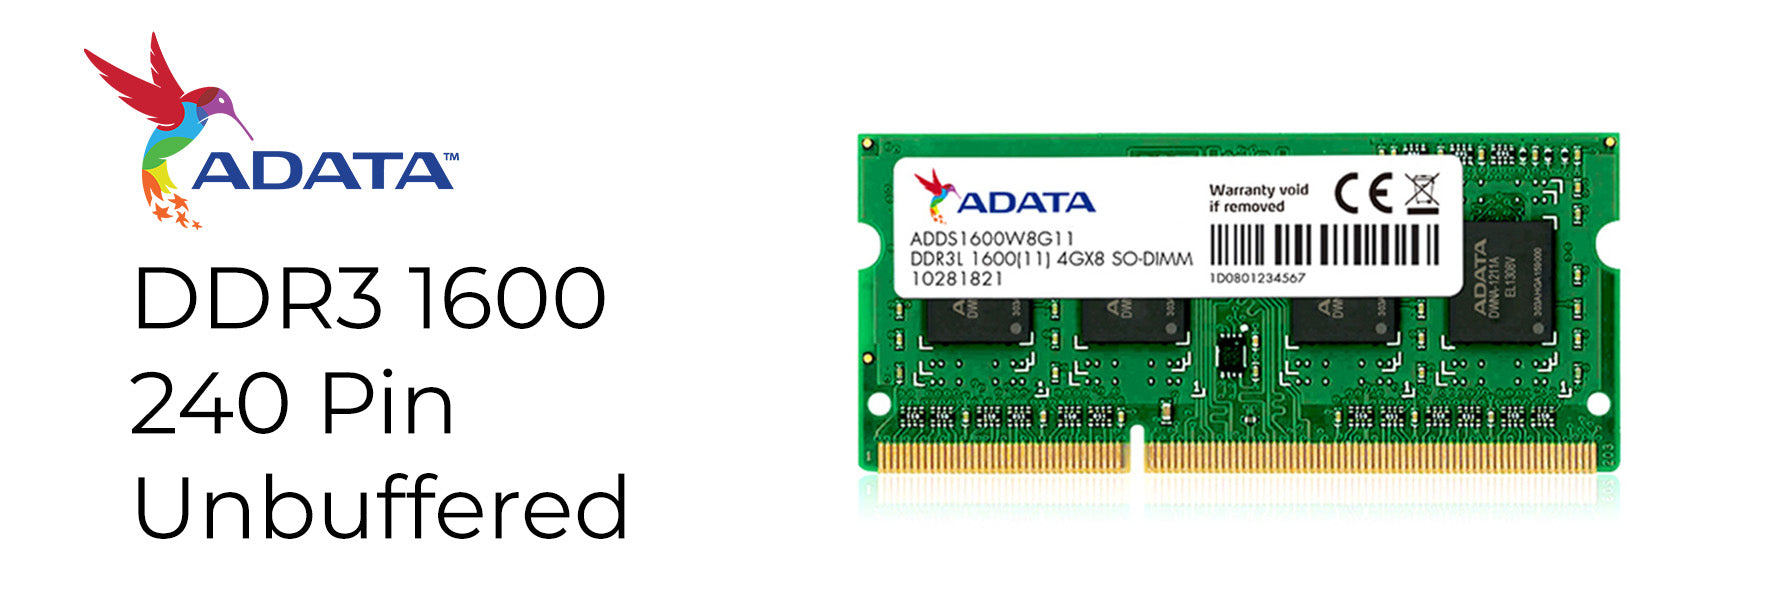 Adata Premier Series Ddr3 8gb 1600mhz Laptop Memory Ram Corsair Ddr3l 1600 Mhz Sodimm Continues To Lead The Industry In Dram Timing And Density With These Single Piece Modules